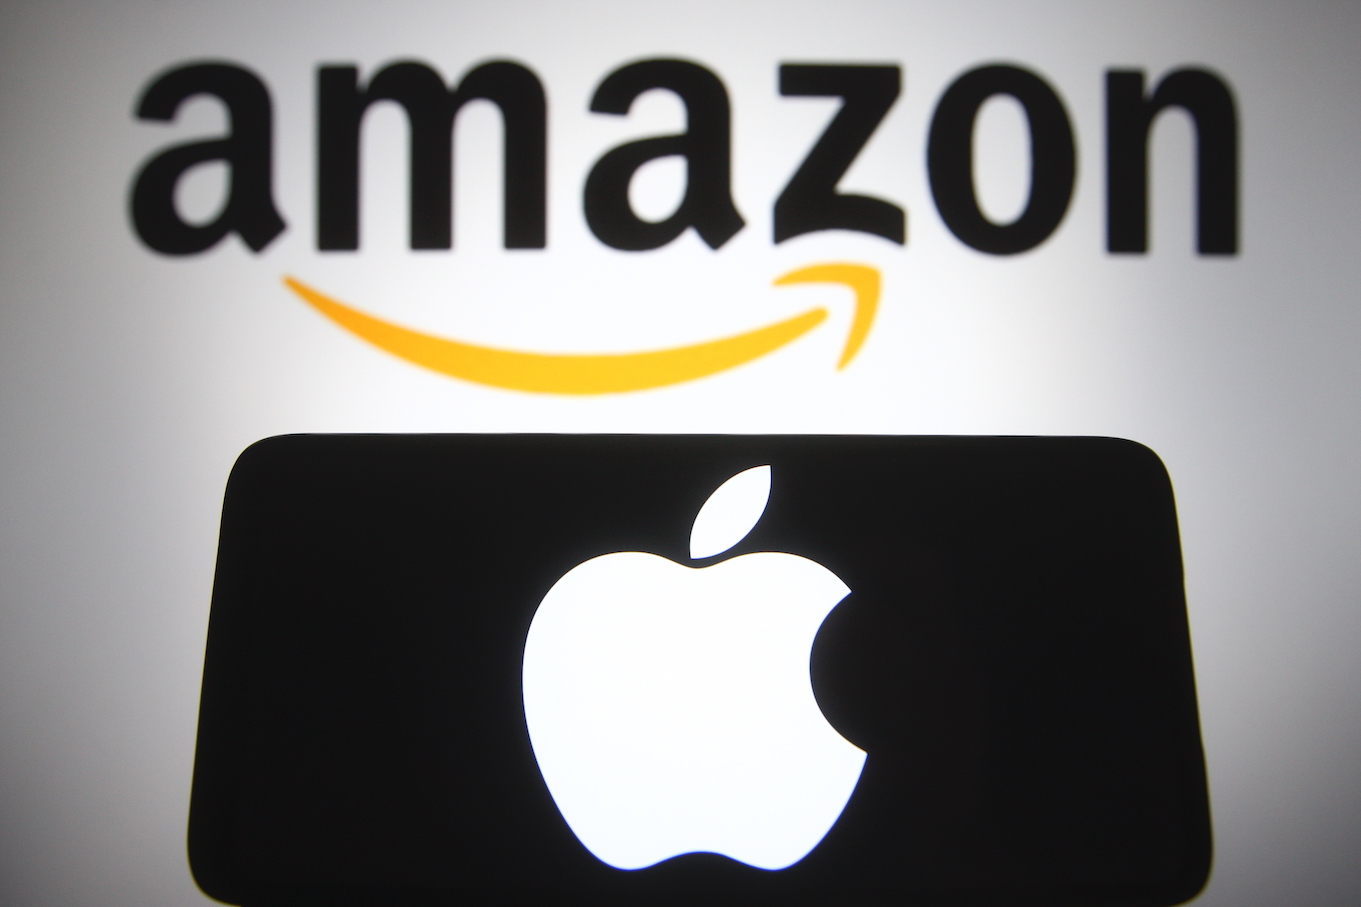 Spain's CNMC is probing whether Amazon's Apple partnership is restricting third-party sales of Apple products on the e-commerce marketplace.